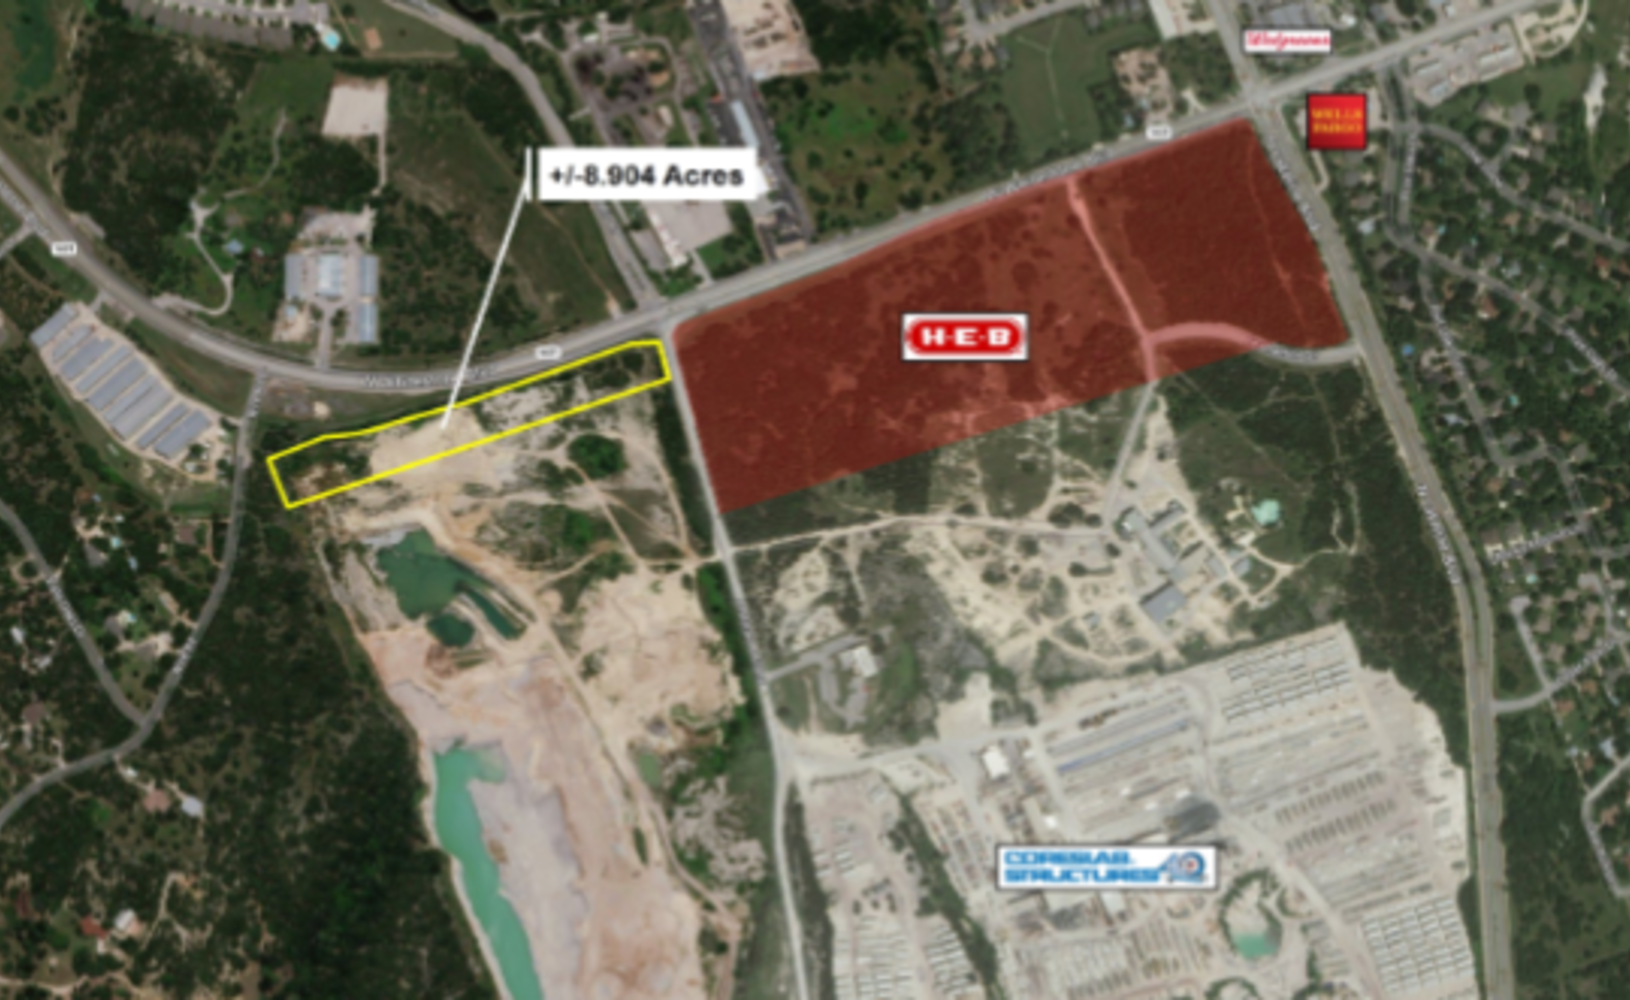 Land Austin, 78613 - FM 1431 & Anderson Mill Rd - Tract 1